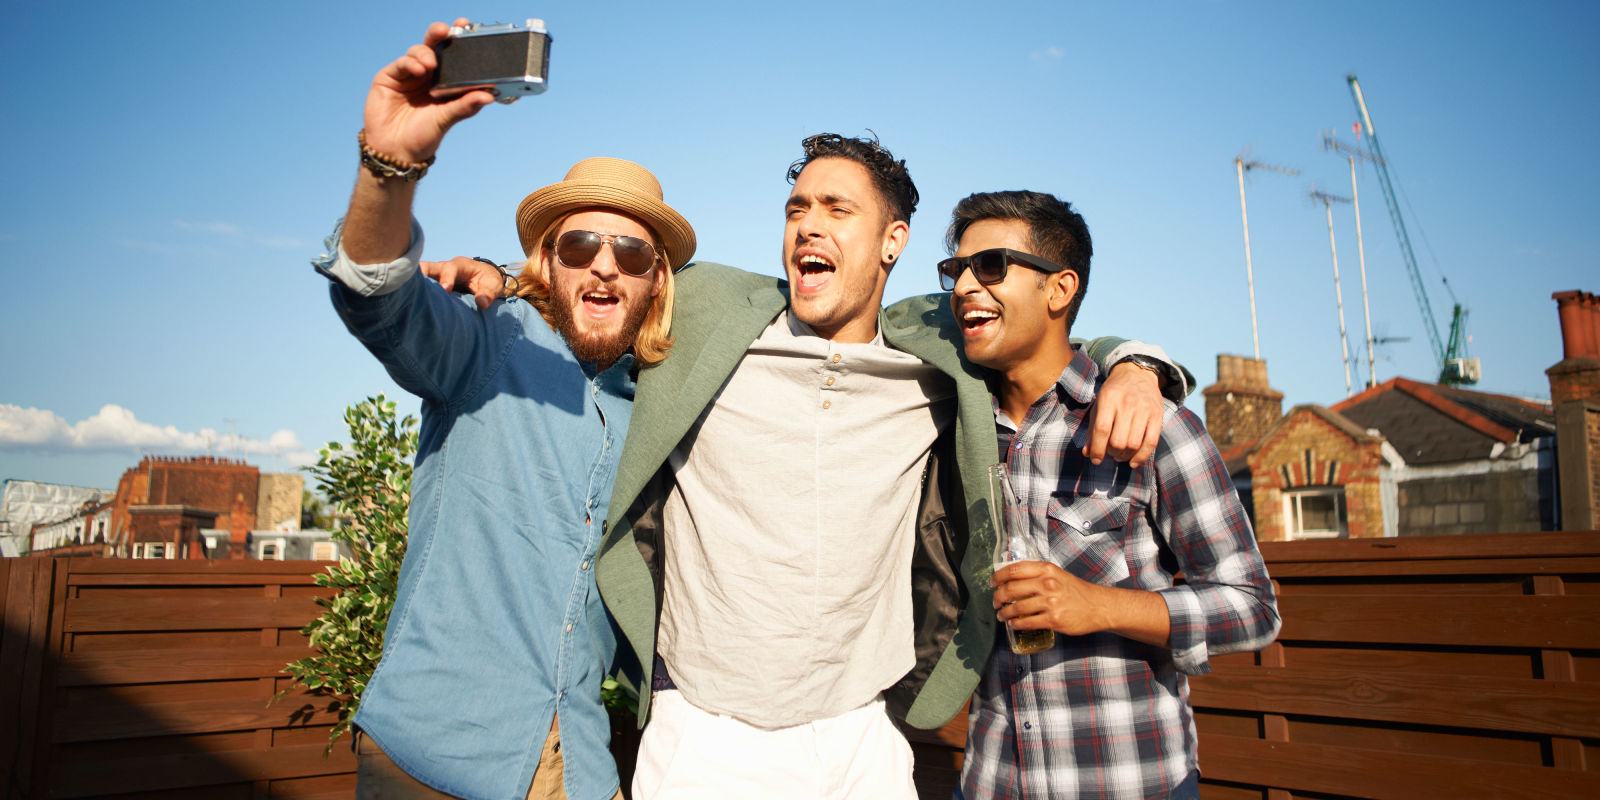 male friendships The 10 best friendships in literature the two male friends (sorry, but i refuse to ever use the word bro) go an epic journey together, which is basically a road trip their funny and simple friendship is a reminder and an ideal of how we should support our friends.